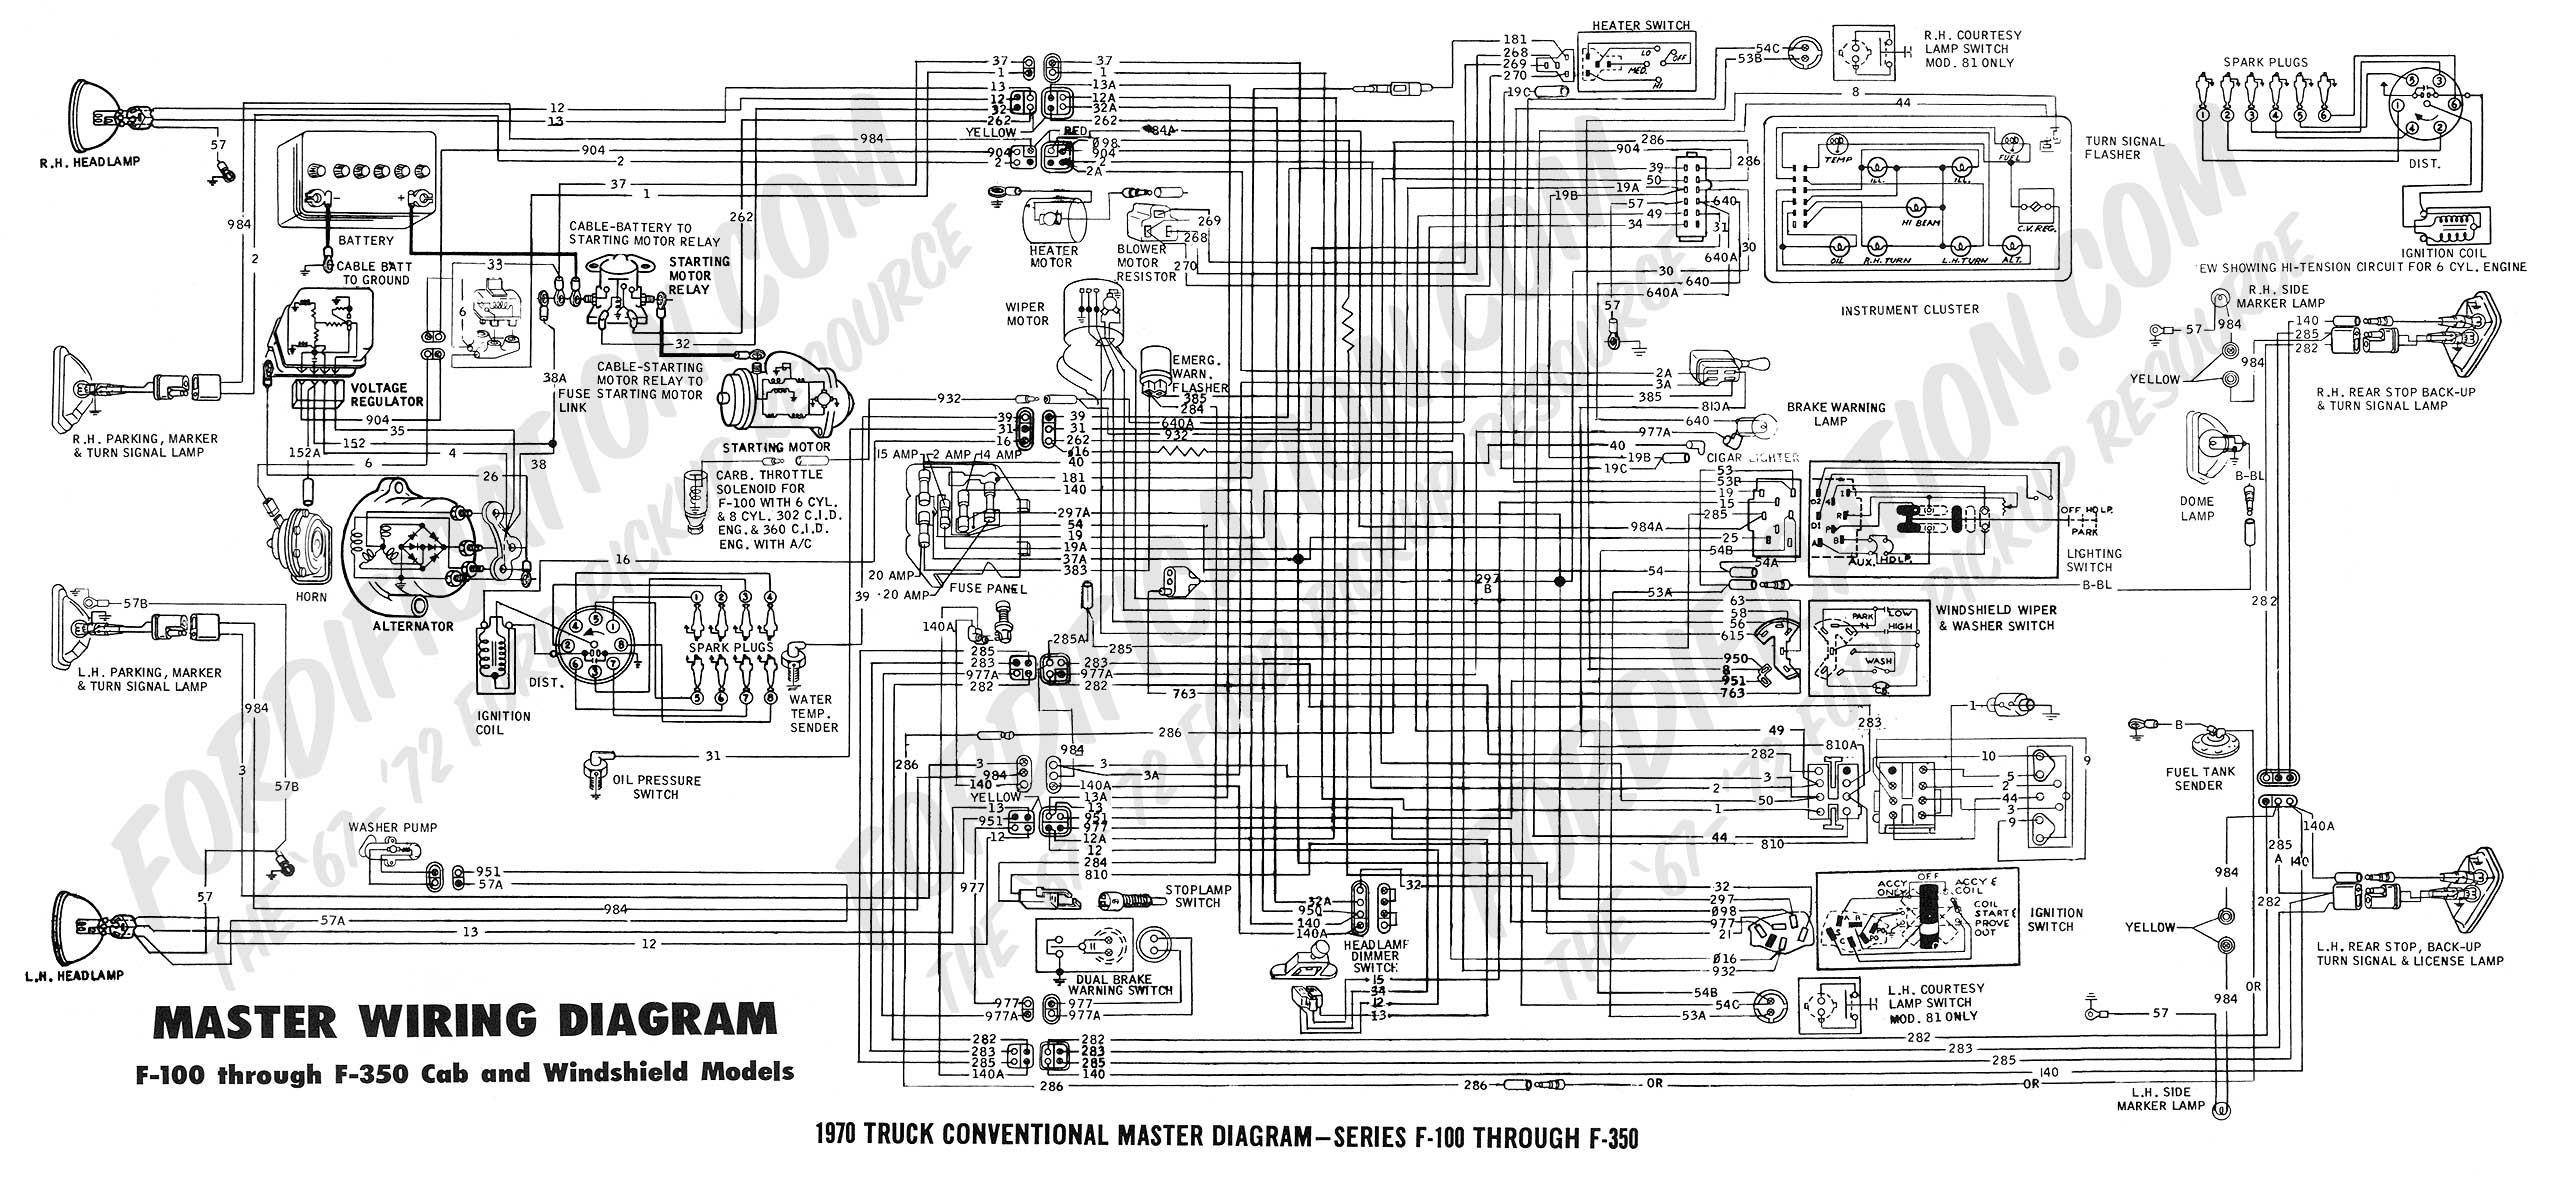 wiring diagram 70_master ford truck technical drawings and schematics section h wiring f250 wiring diagram at nearapp.co